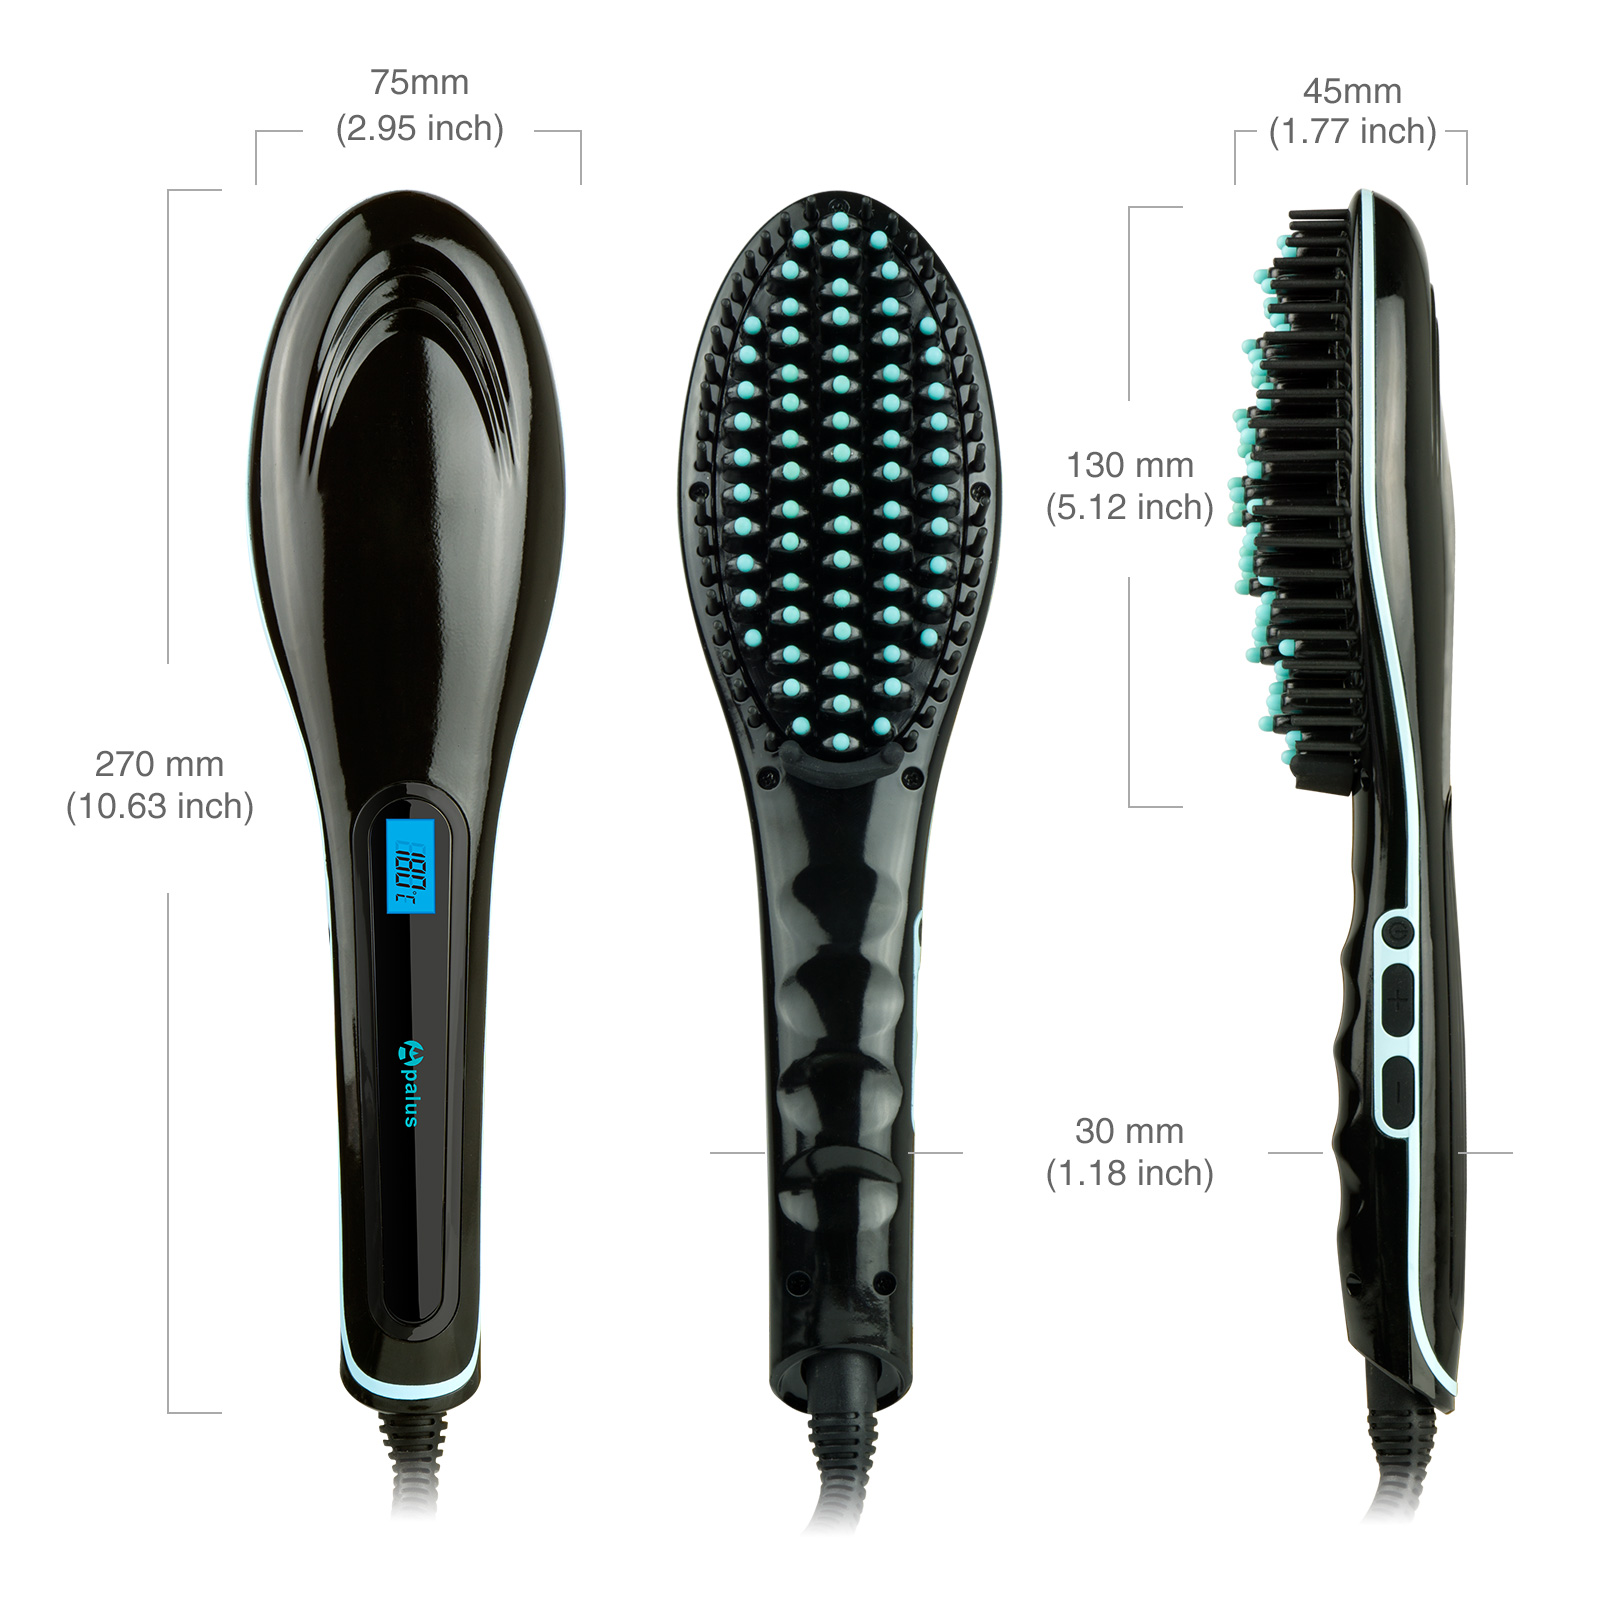 Apalus Hair Straightening Brush Black